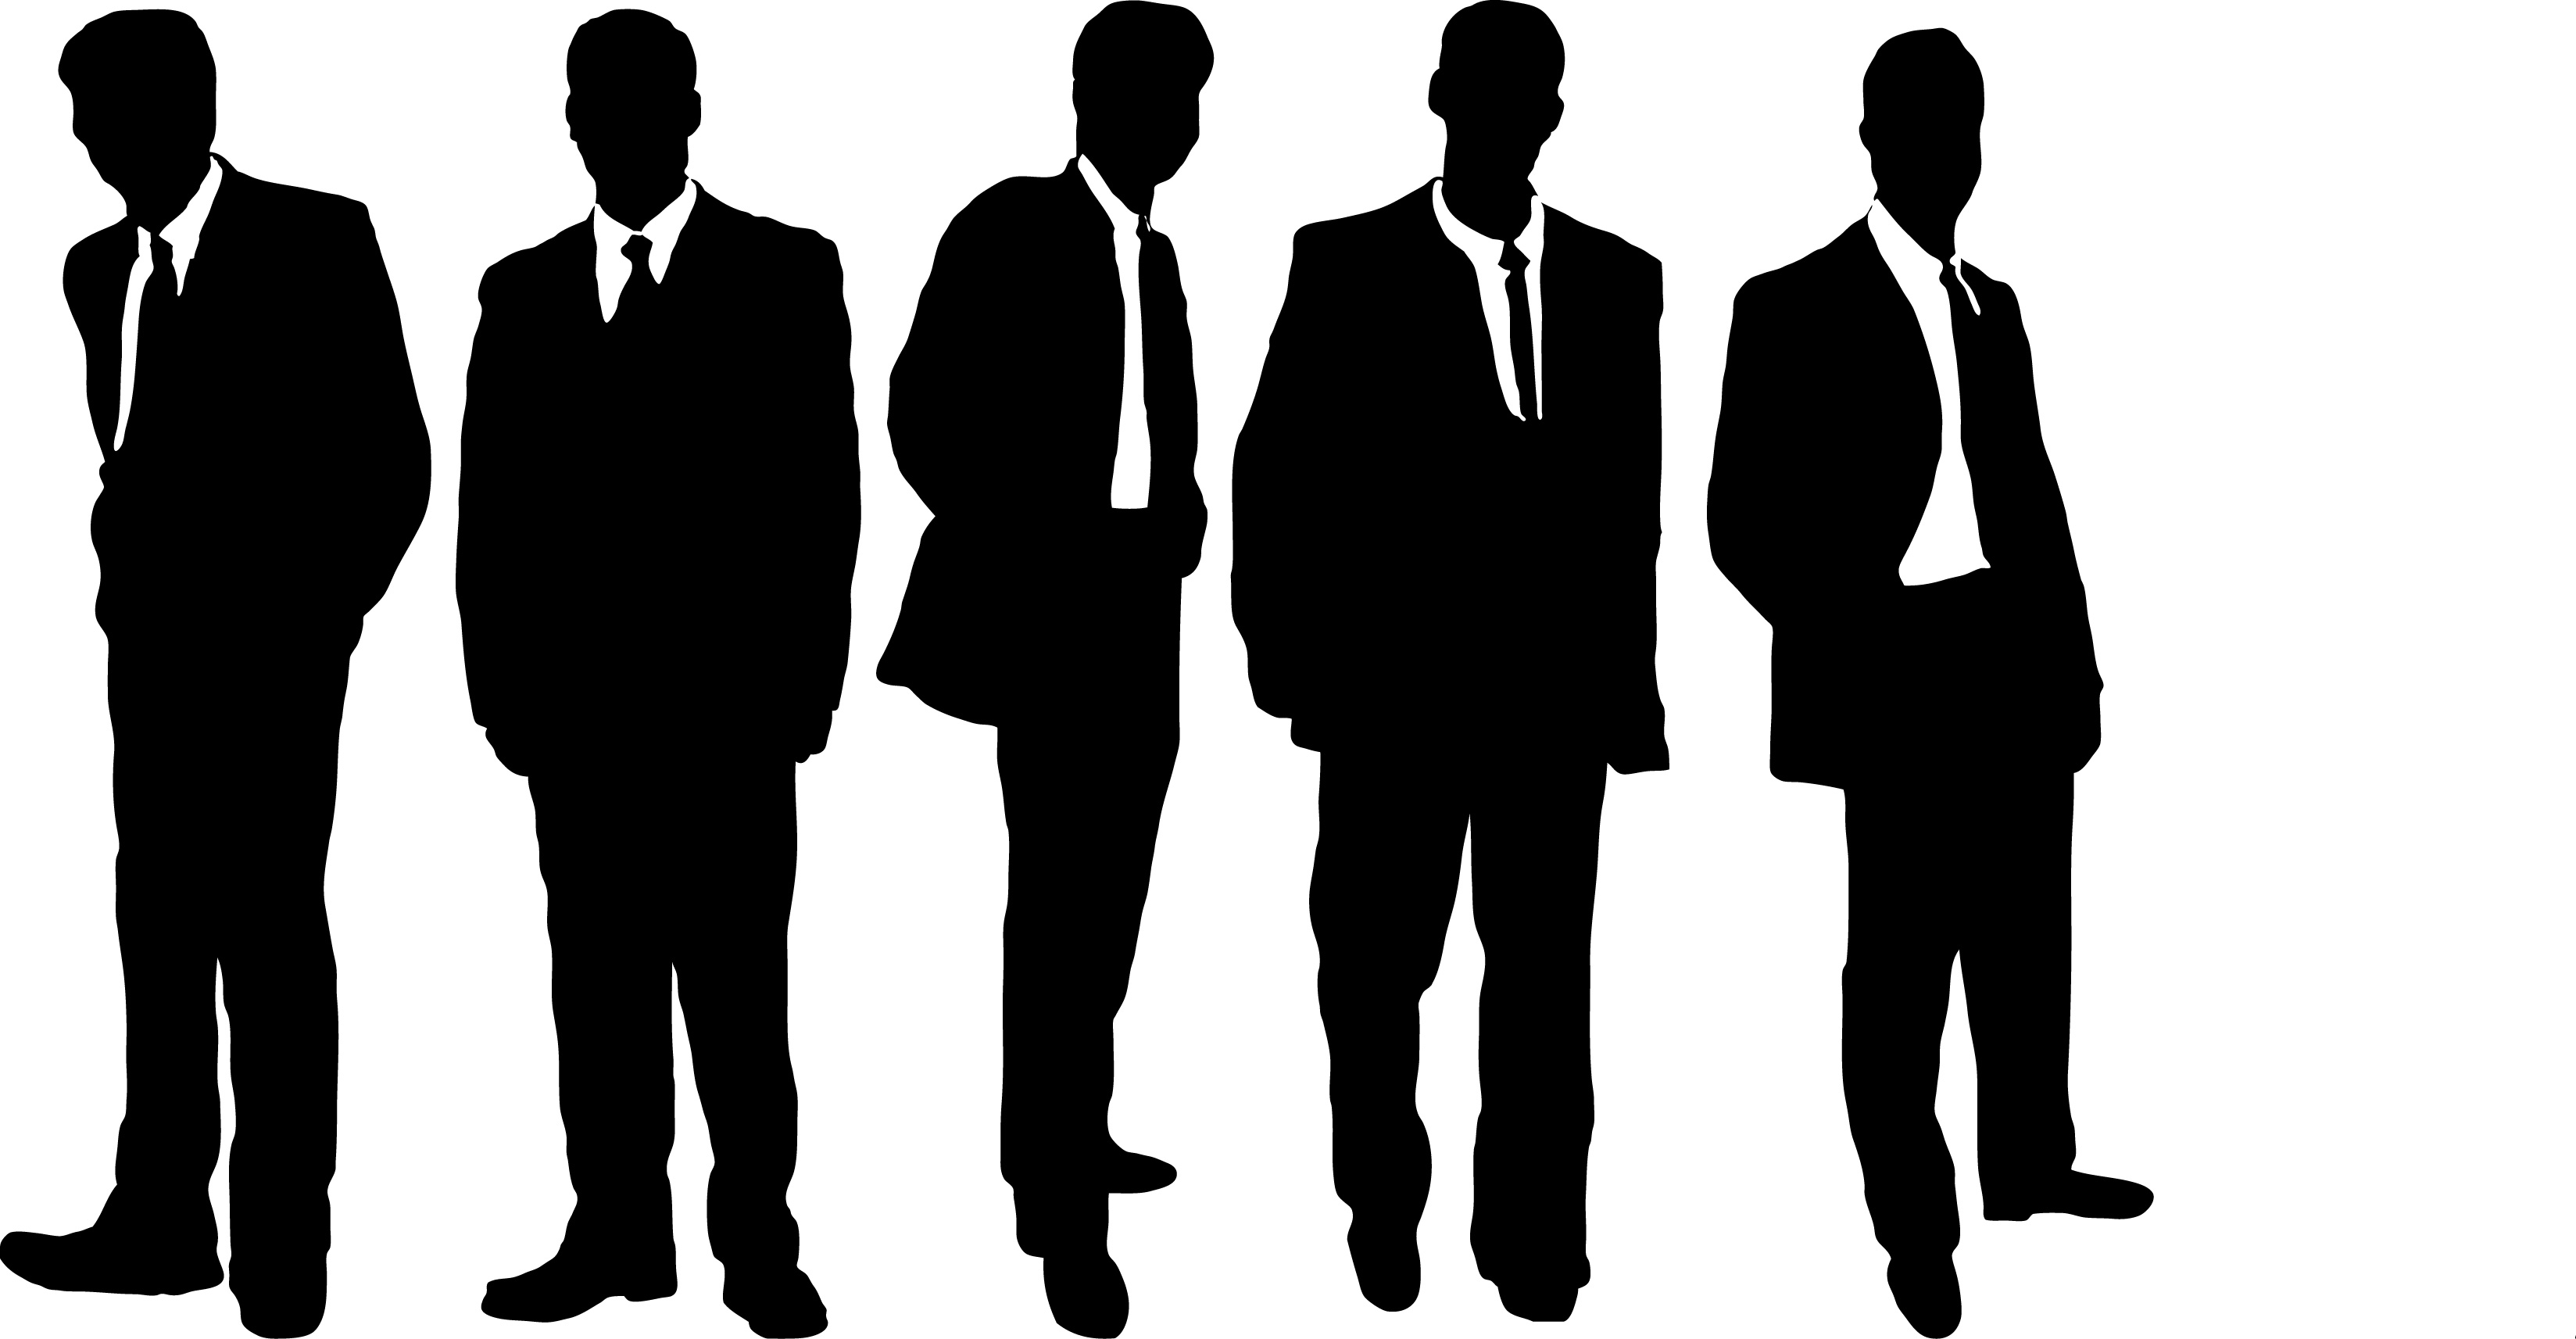 3296x1713 People Clipart Black And White